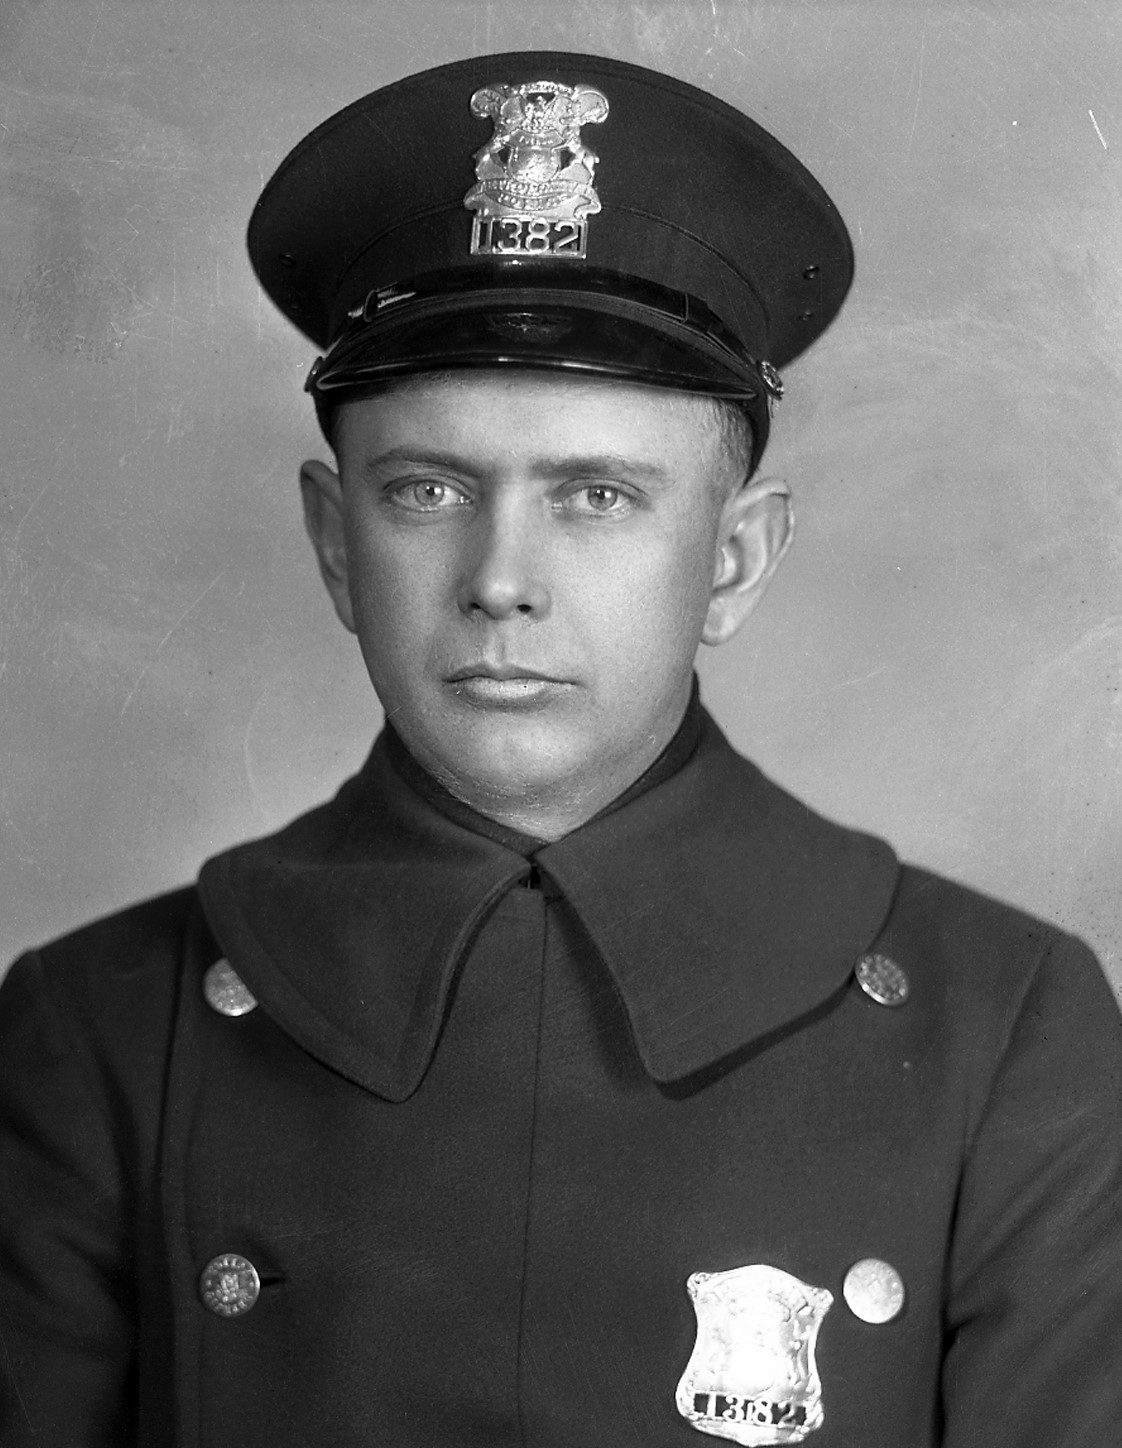 Police Officer Charles C. McMillan | Detroit Police Department, Michigan